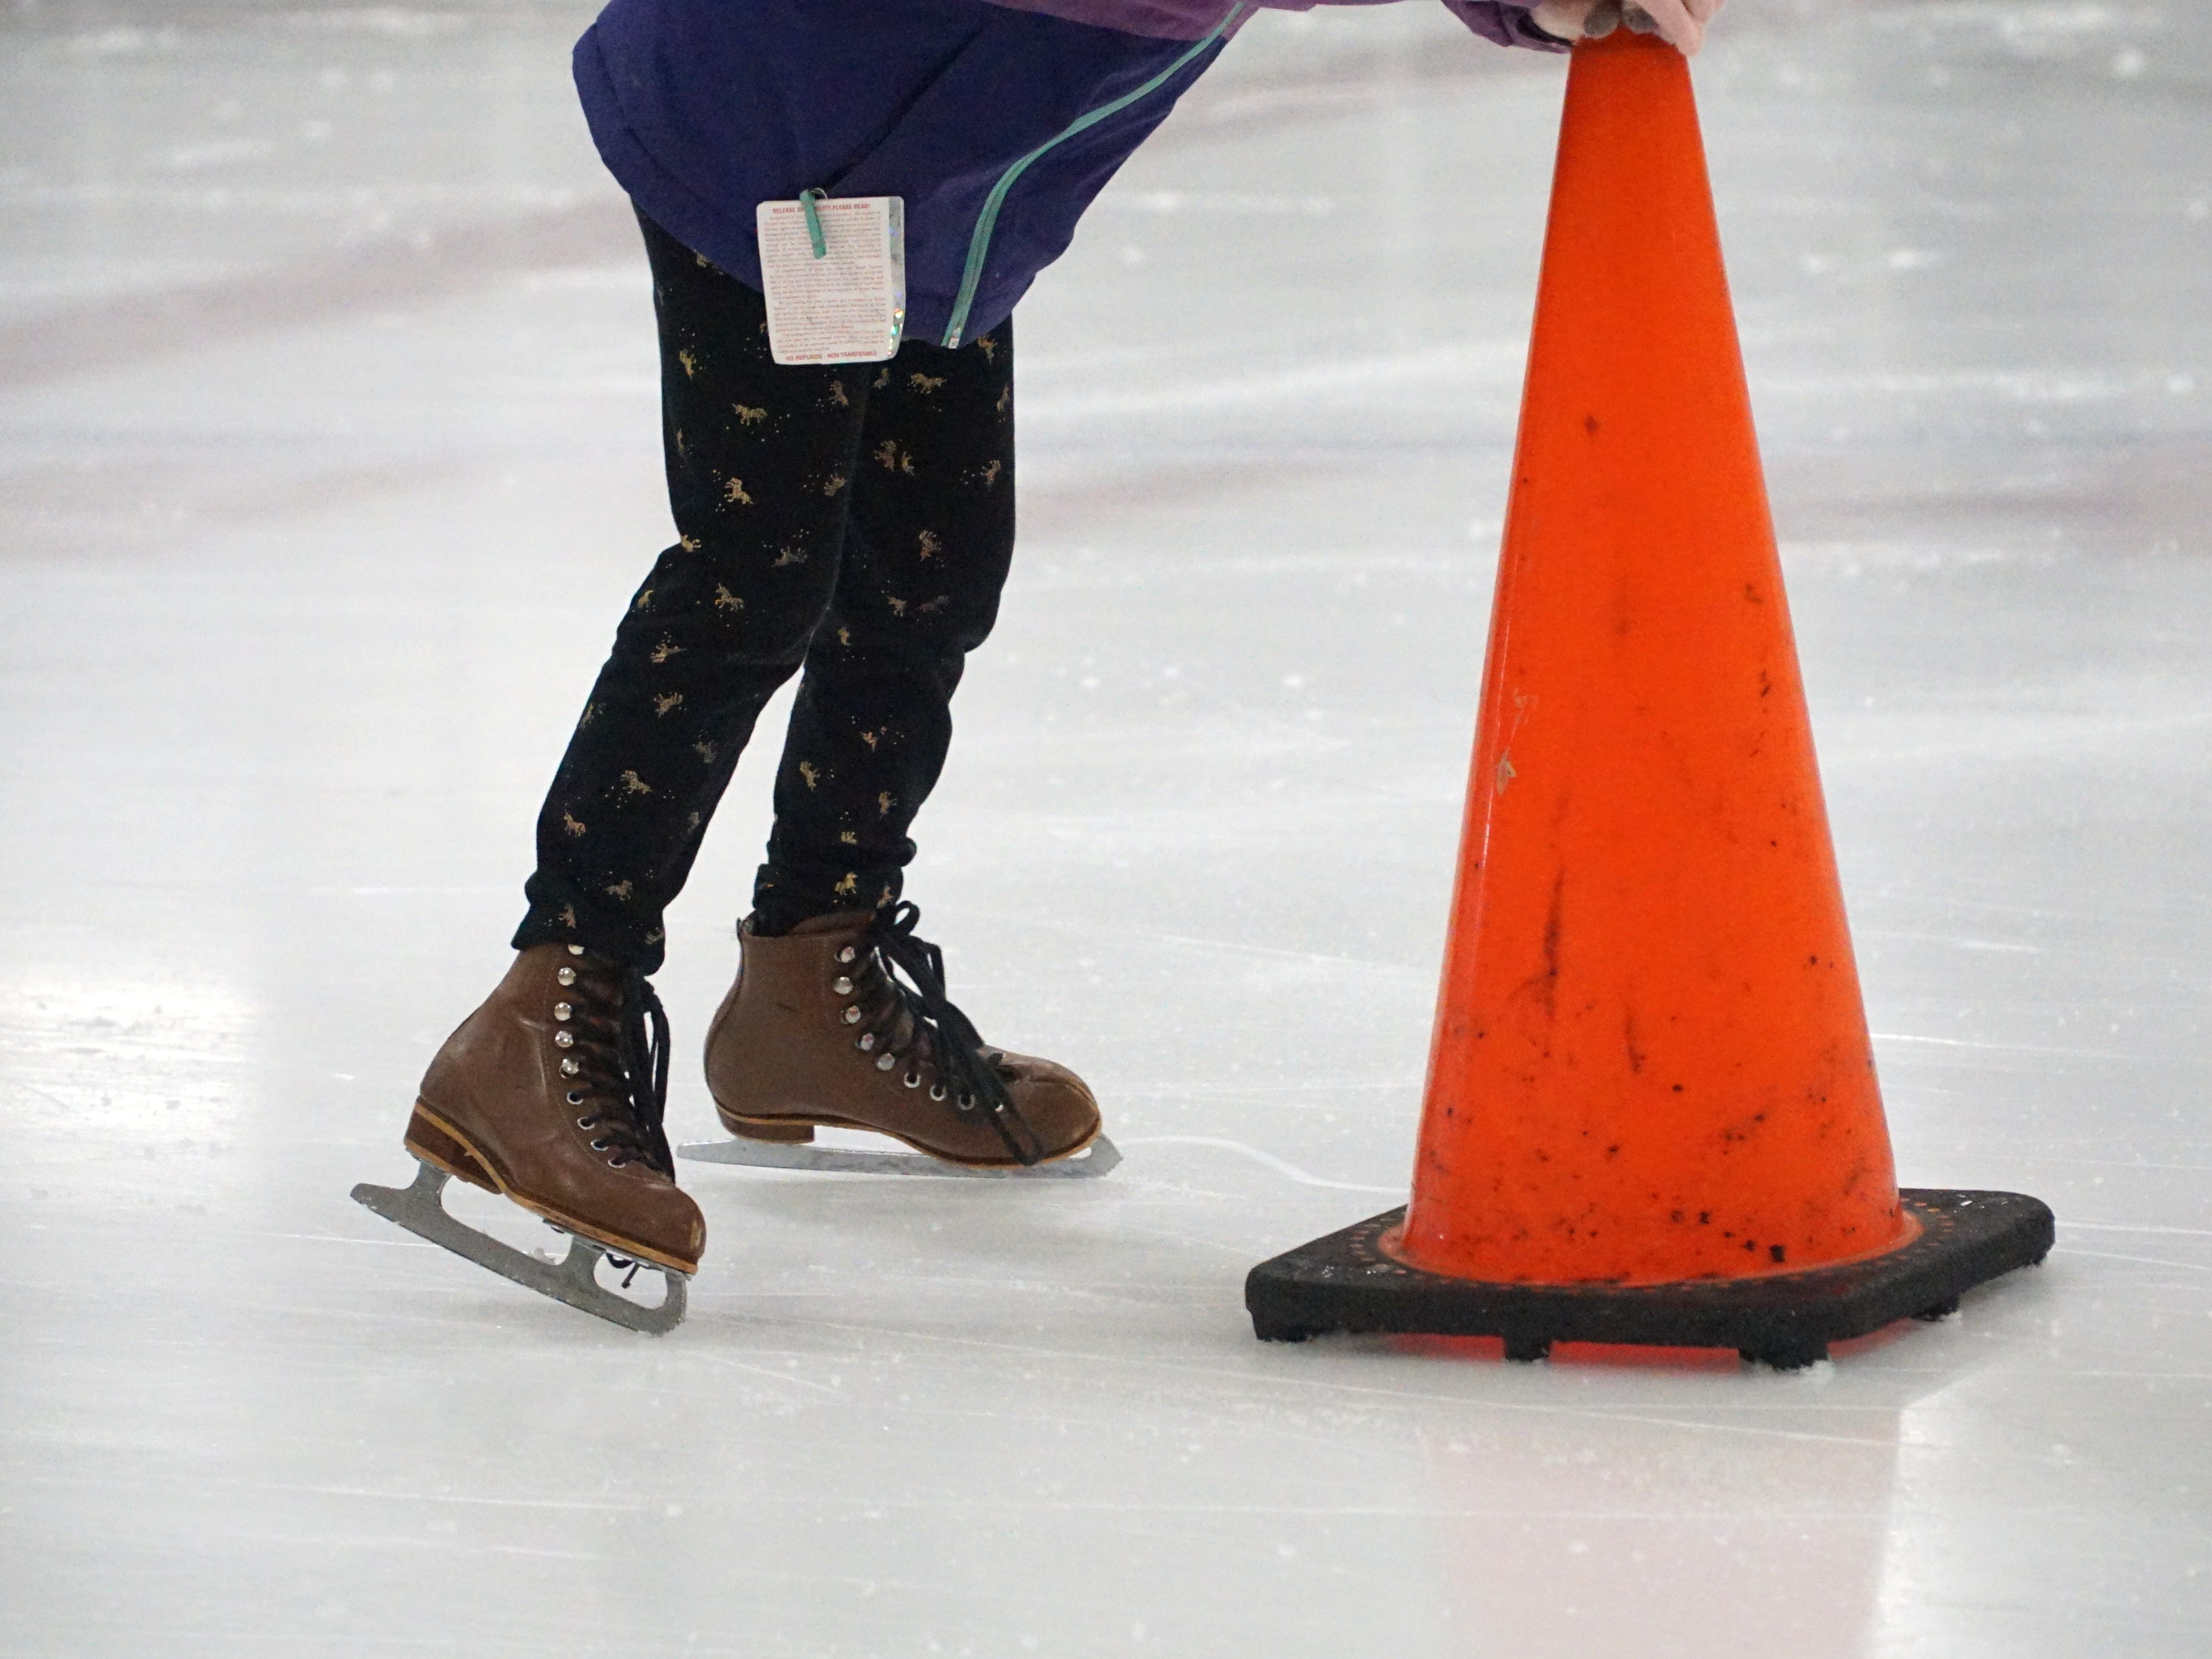 Novice skaters used traffic cones to navigate their way around at the Birmingham Ice Arena on Feb. 22.